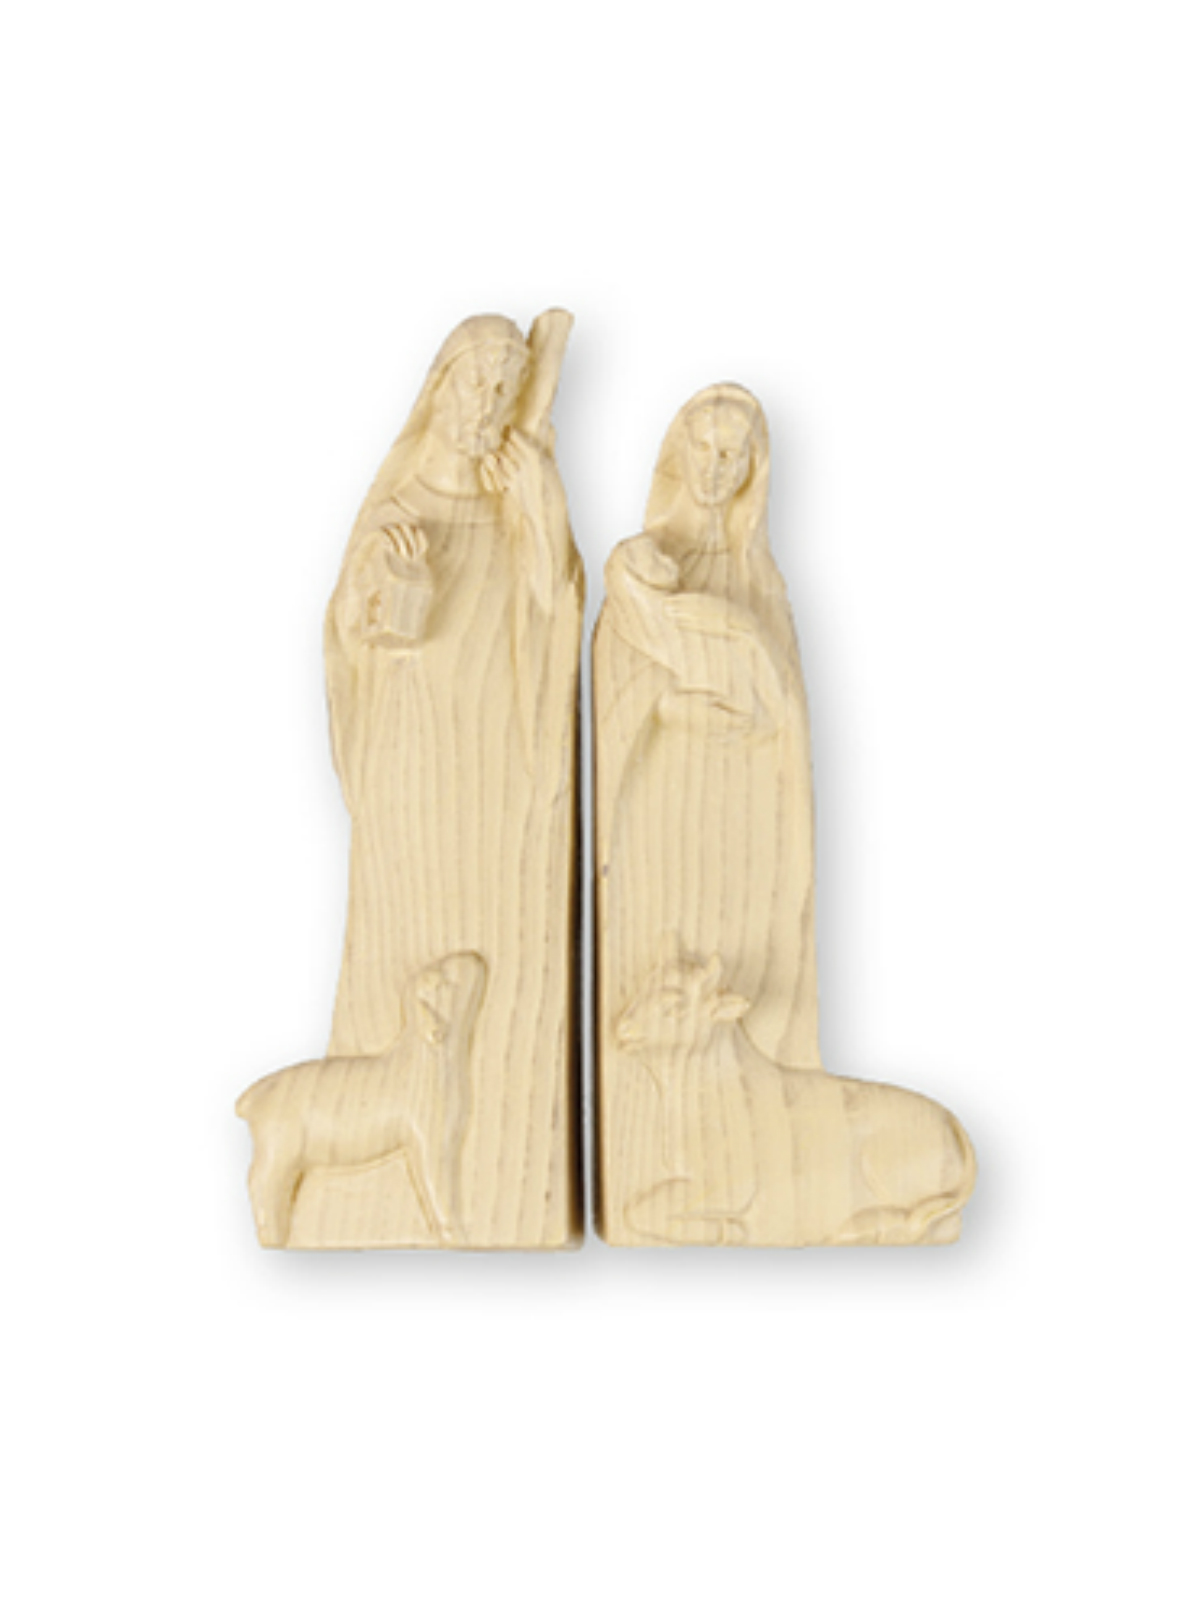 89150 Holy Family Figures